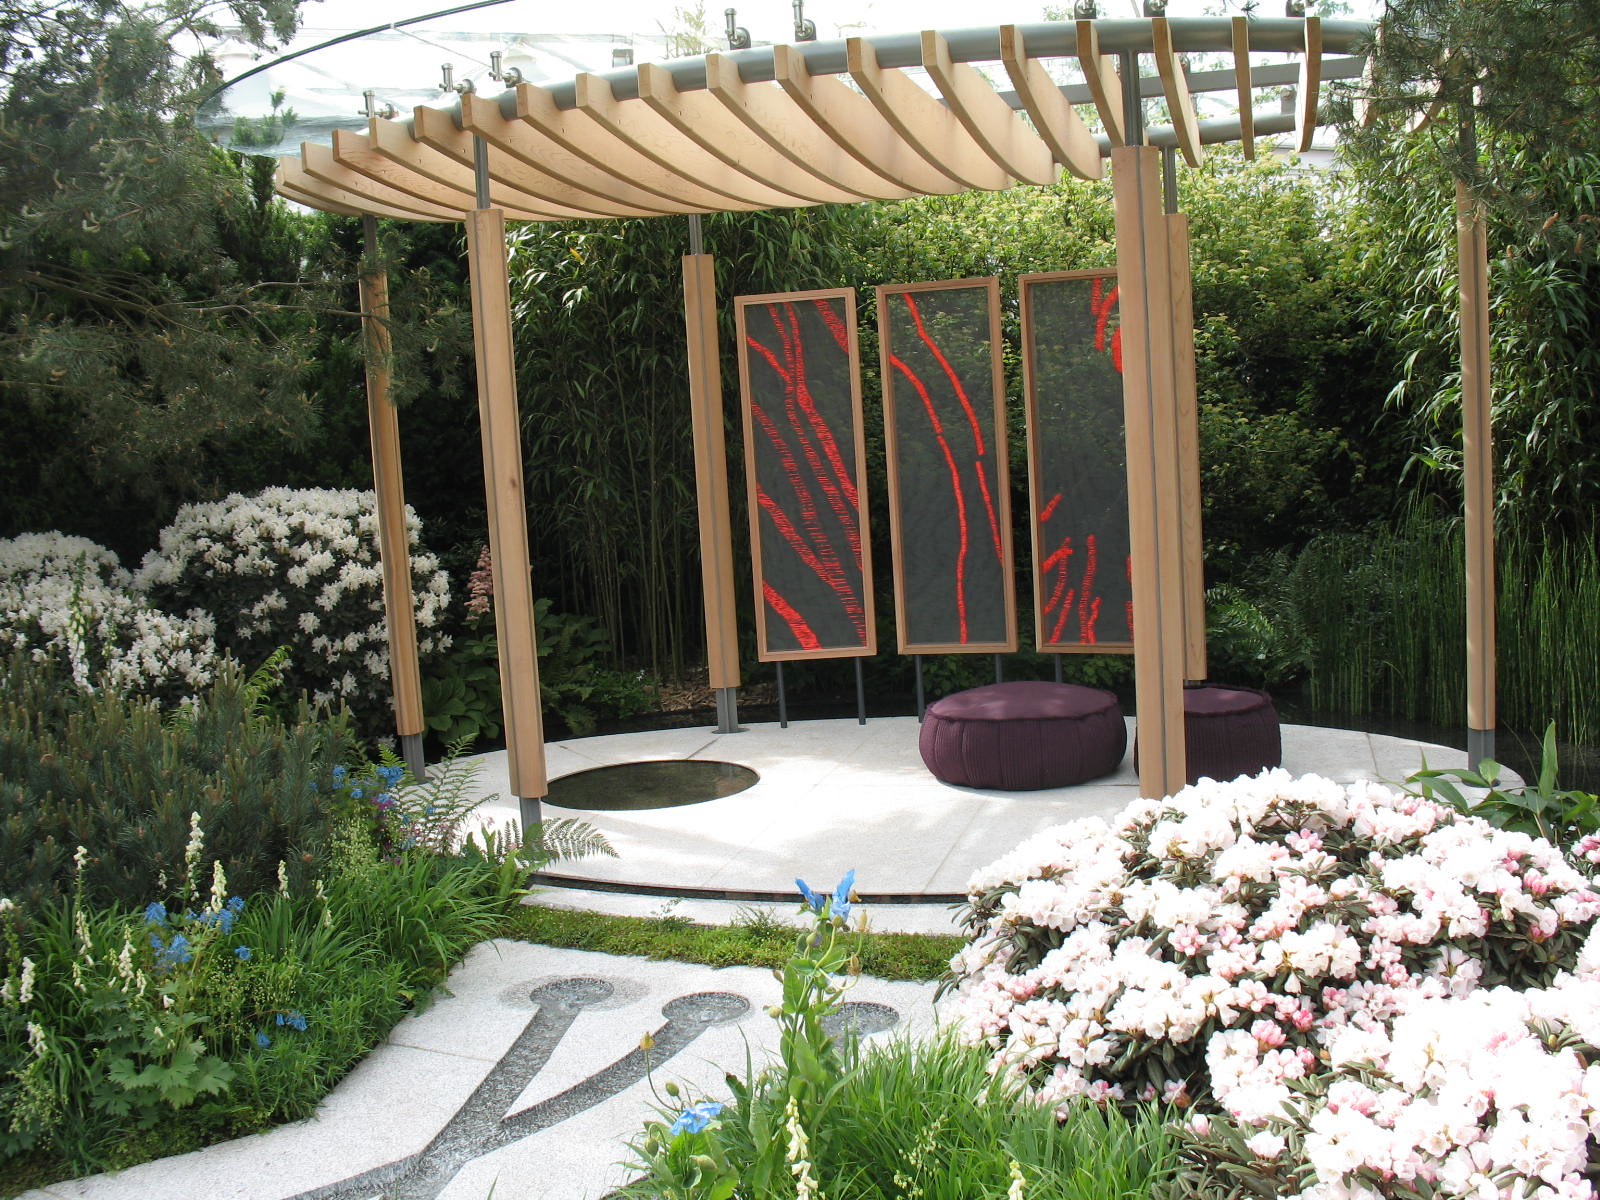 Islamic Gardens And Landscapes Alices garden travel buzz cornish memories garden pavilion photo alice joyce workwithnaturefo